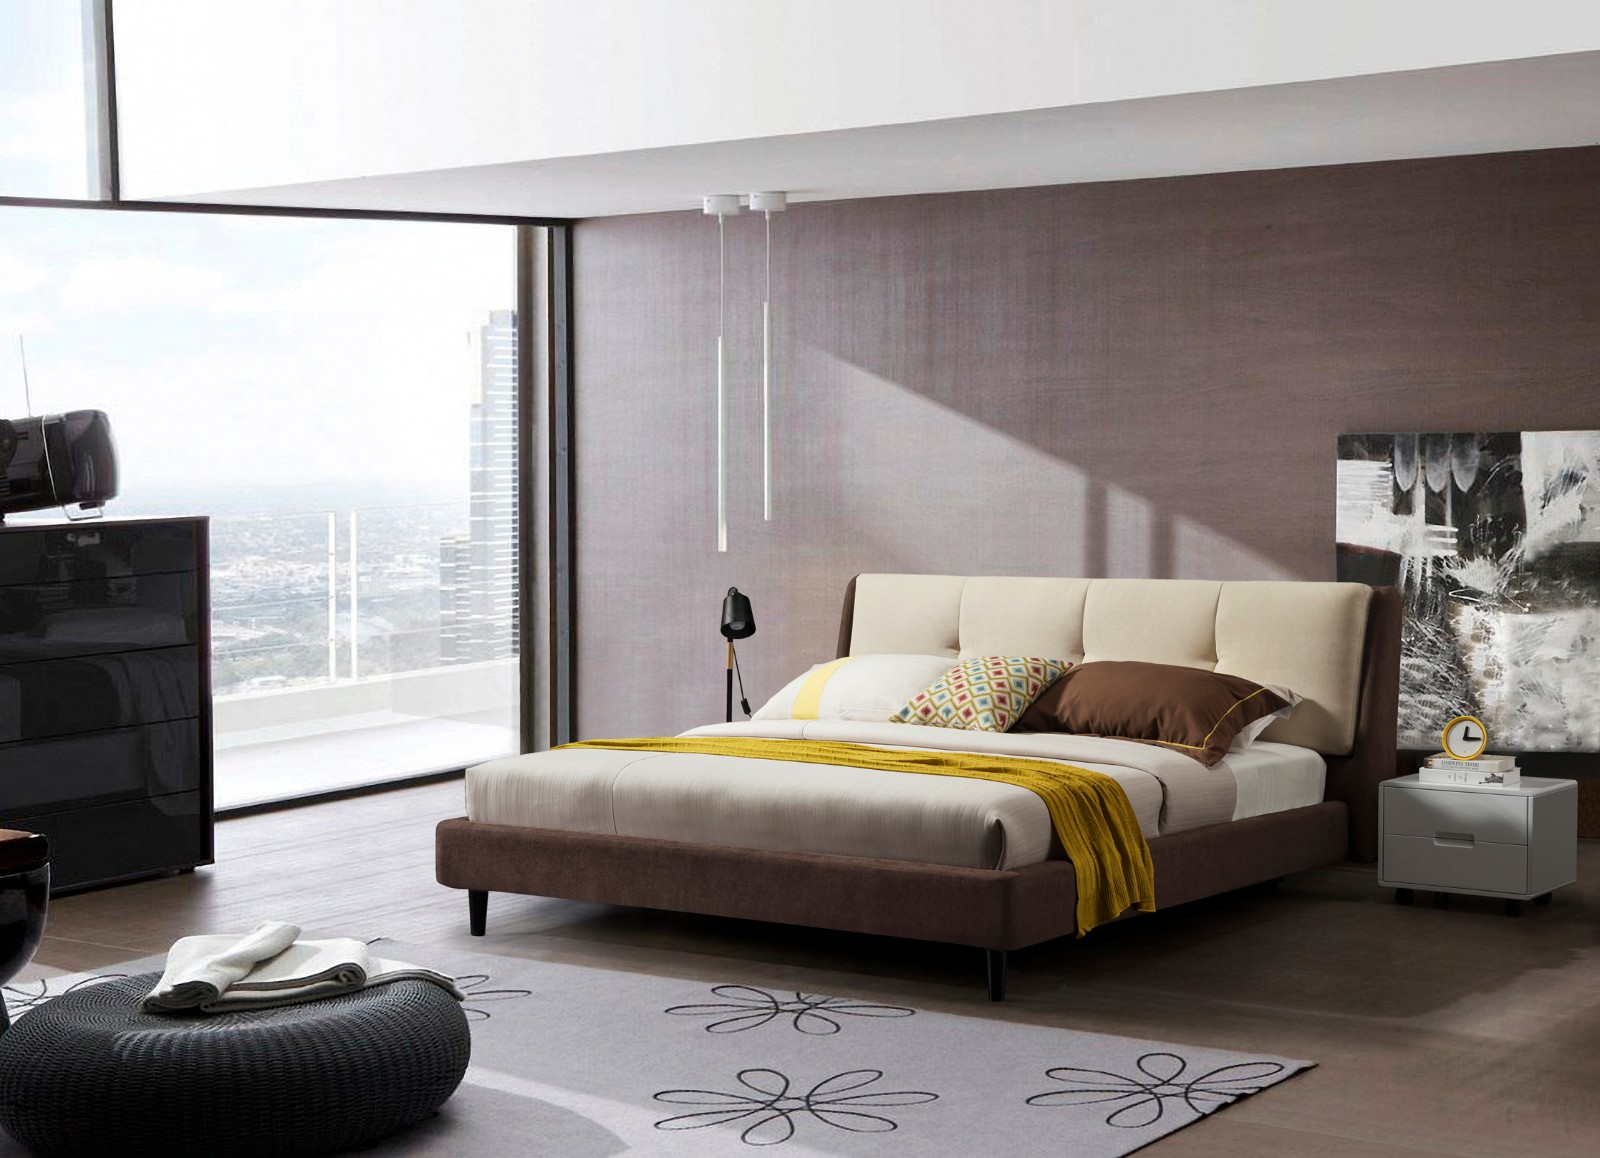 news-Giving Your Bedroom Some light and Embellishment Benefits You Both Physically and Mentally-GOJ-1